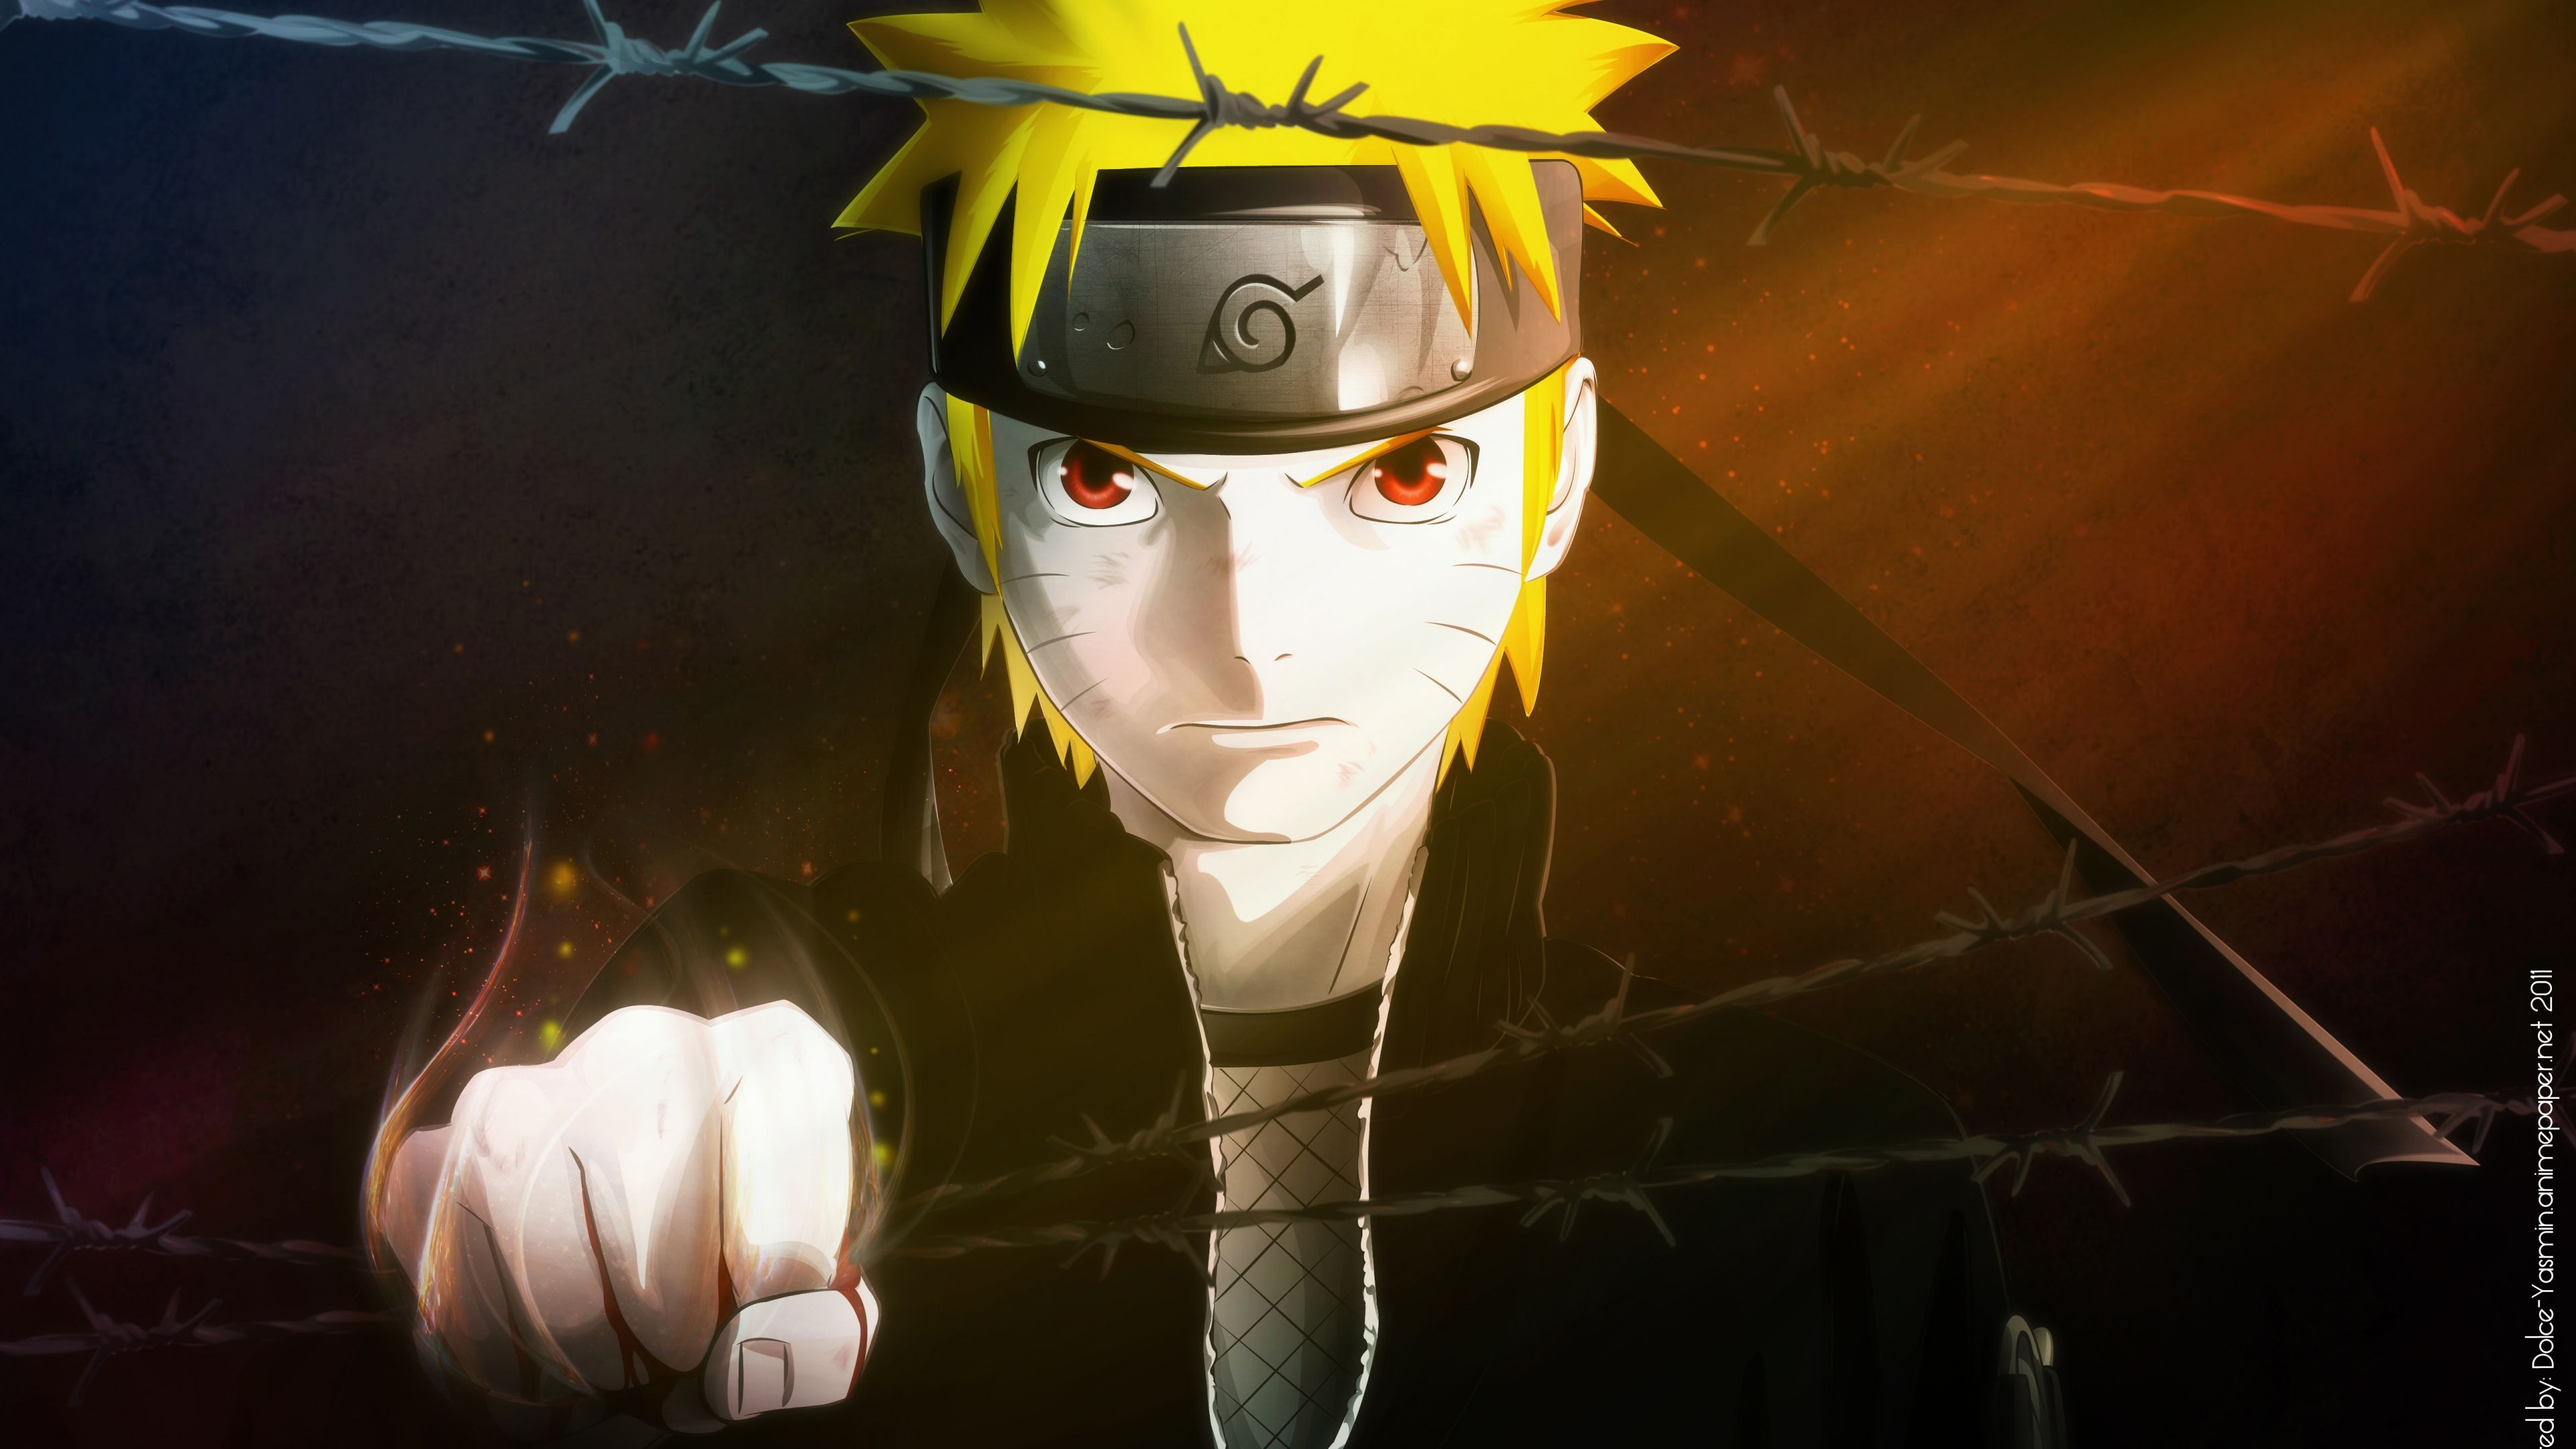 4k ultra hd tv is here, but what brands and models are available and what do they offer? Anime Naruto HD 8k Wallpapers - Wallpaper Cave